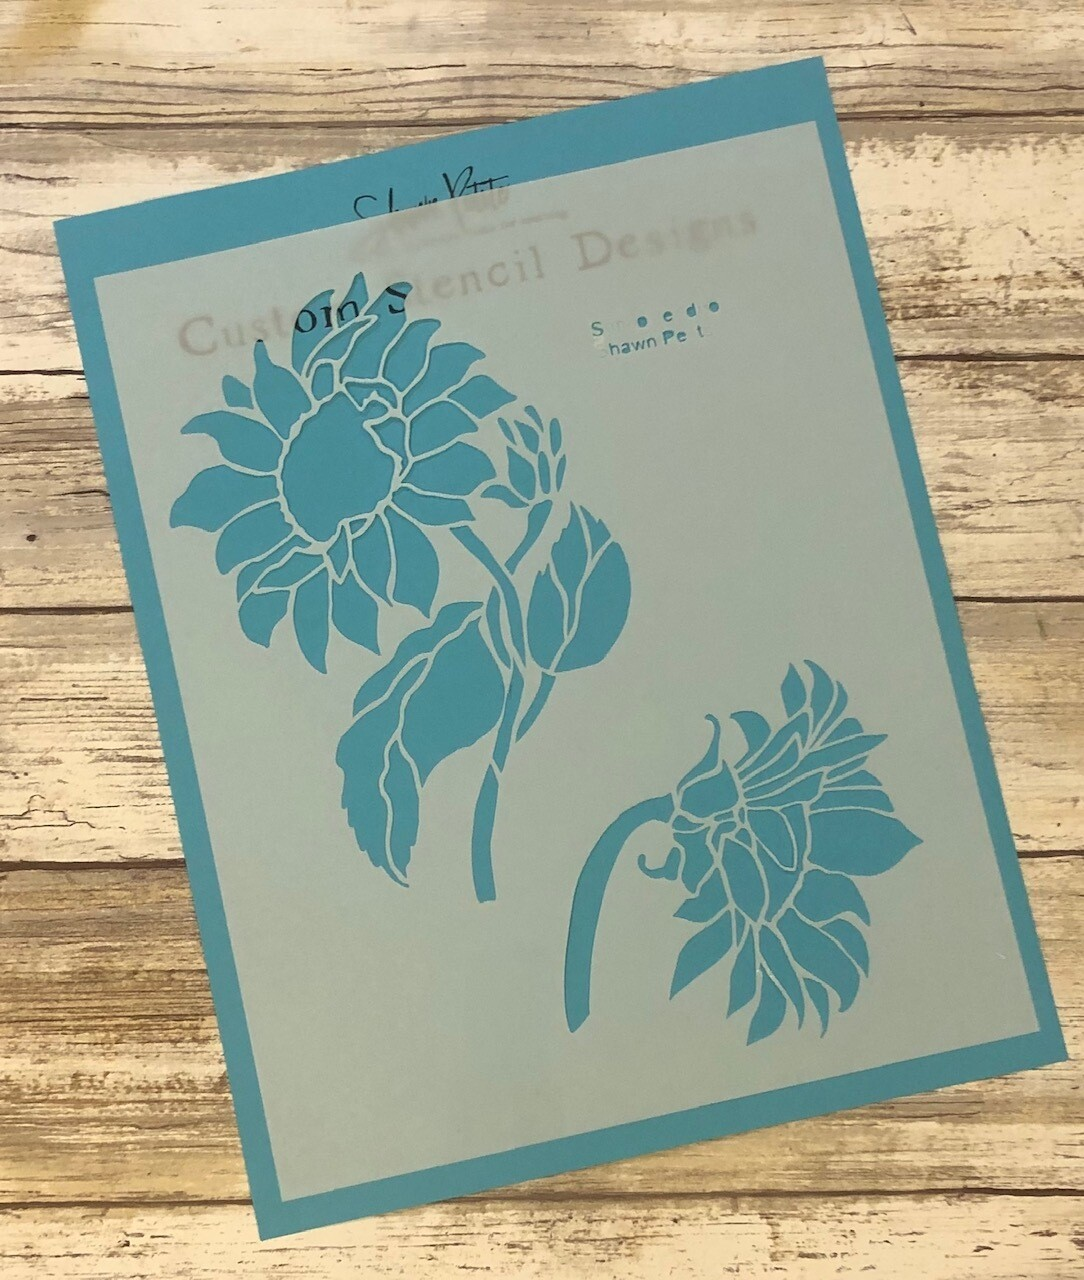 Sunflower Duo clearance stencil